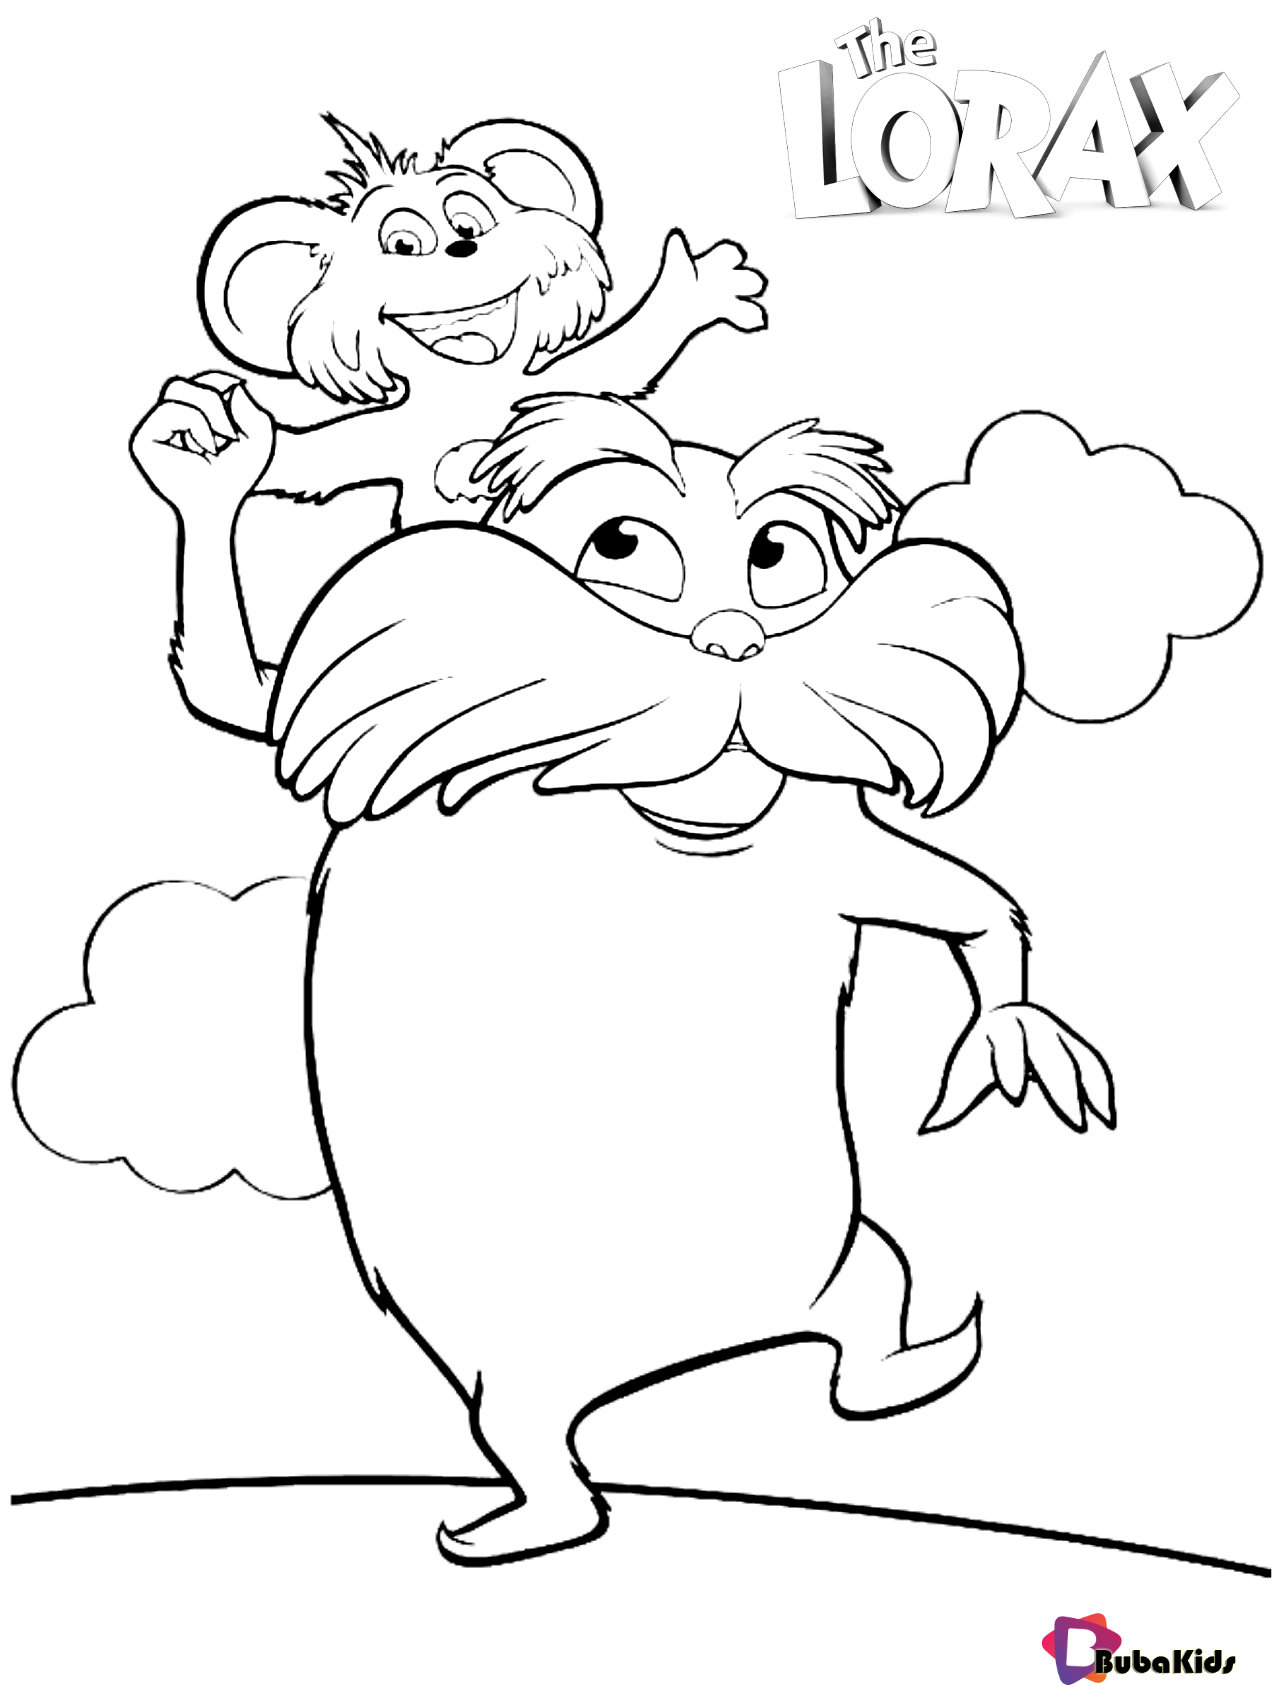 Pin By Coloring Pages Bubakids On Cartoon Coloring Pages In 2020 Cartoon Coloring Pages Coloring Pages Printable Coloring Book